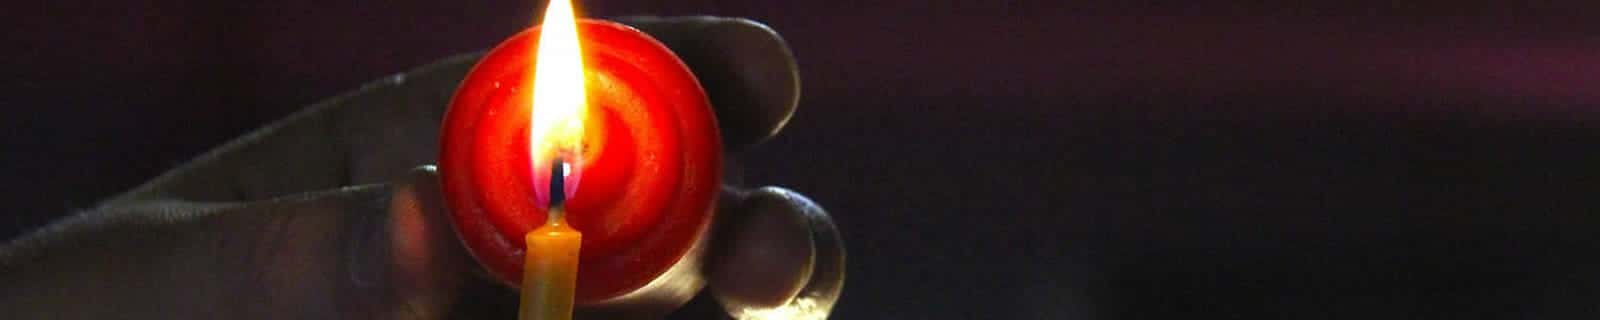 Hand holding a red votive candle